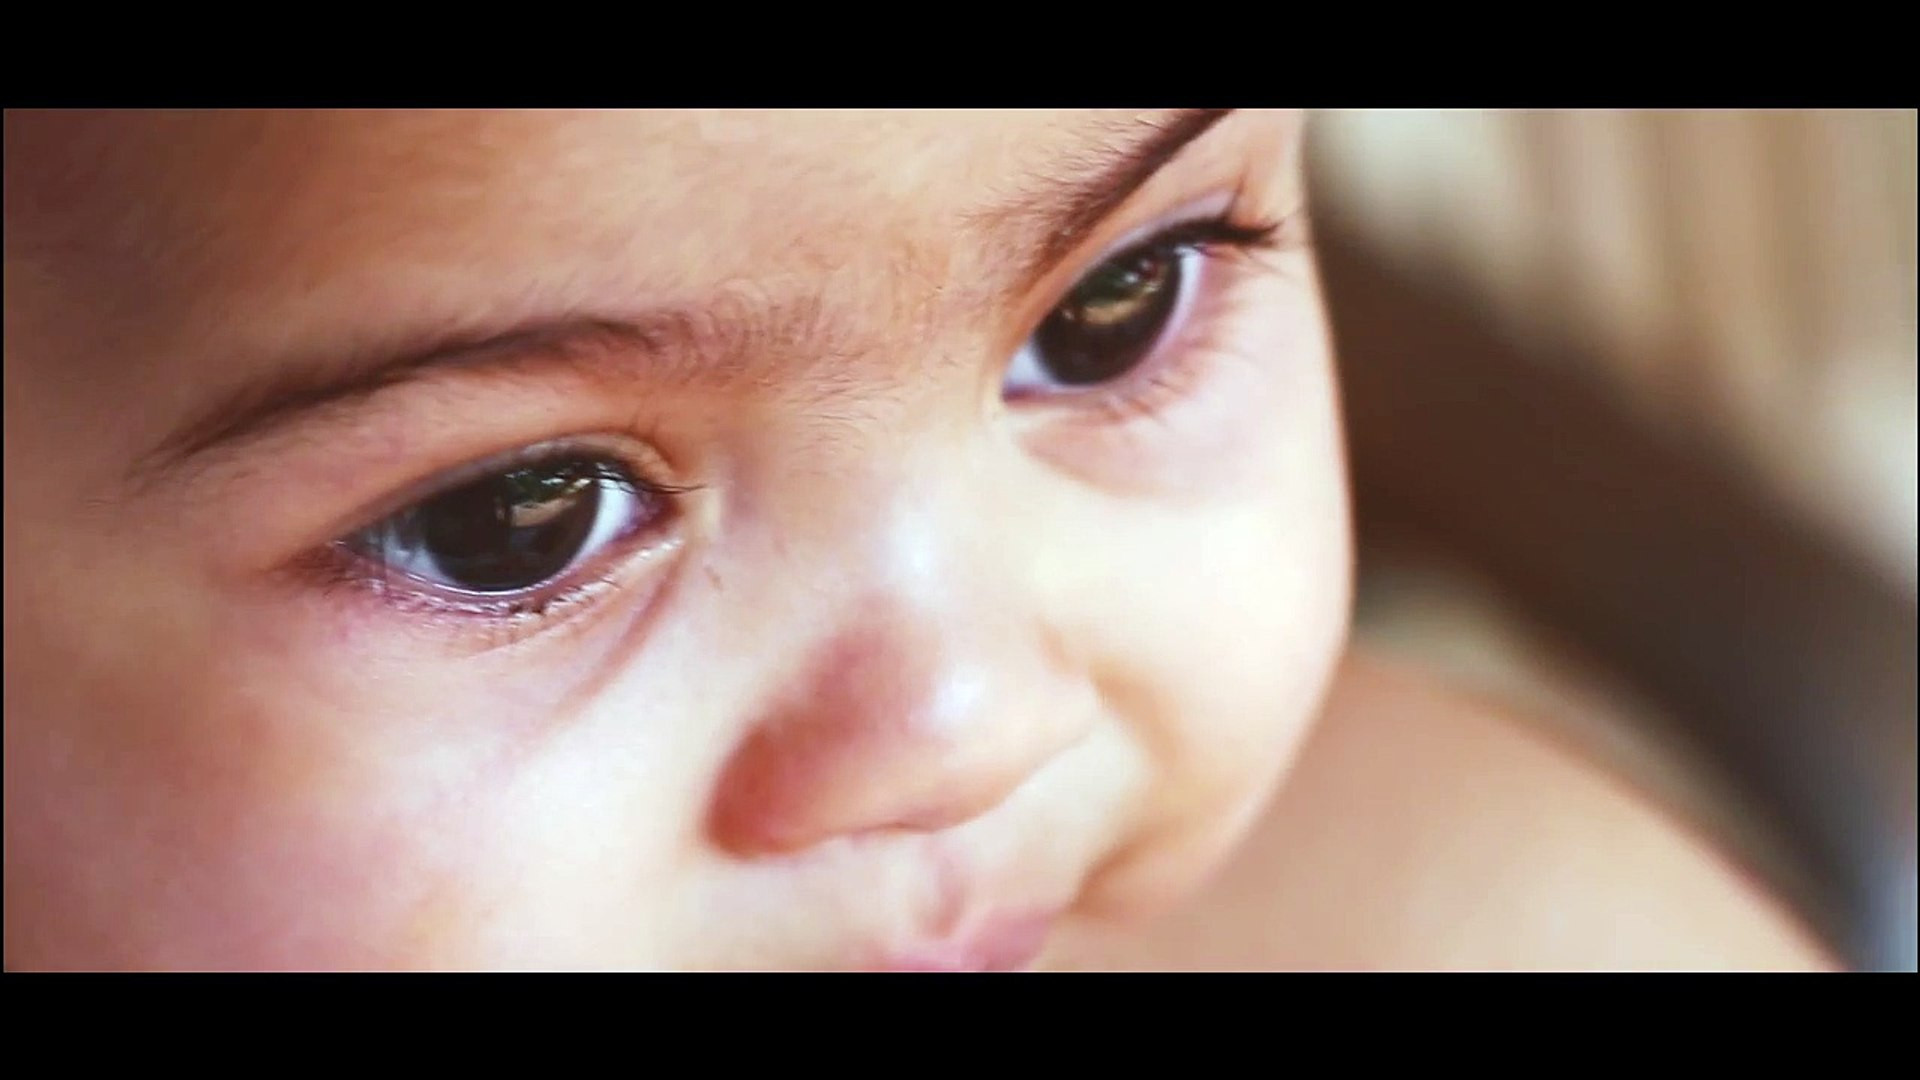 Cute Little Baby | Happy Baby | Canon 700D(Cute Baby Video)